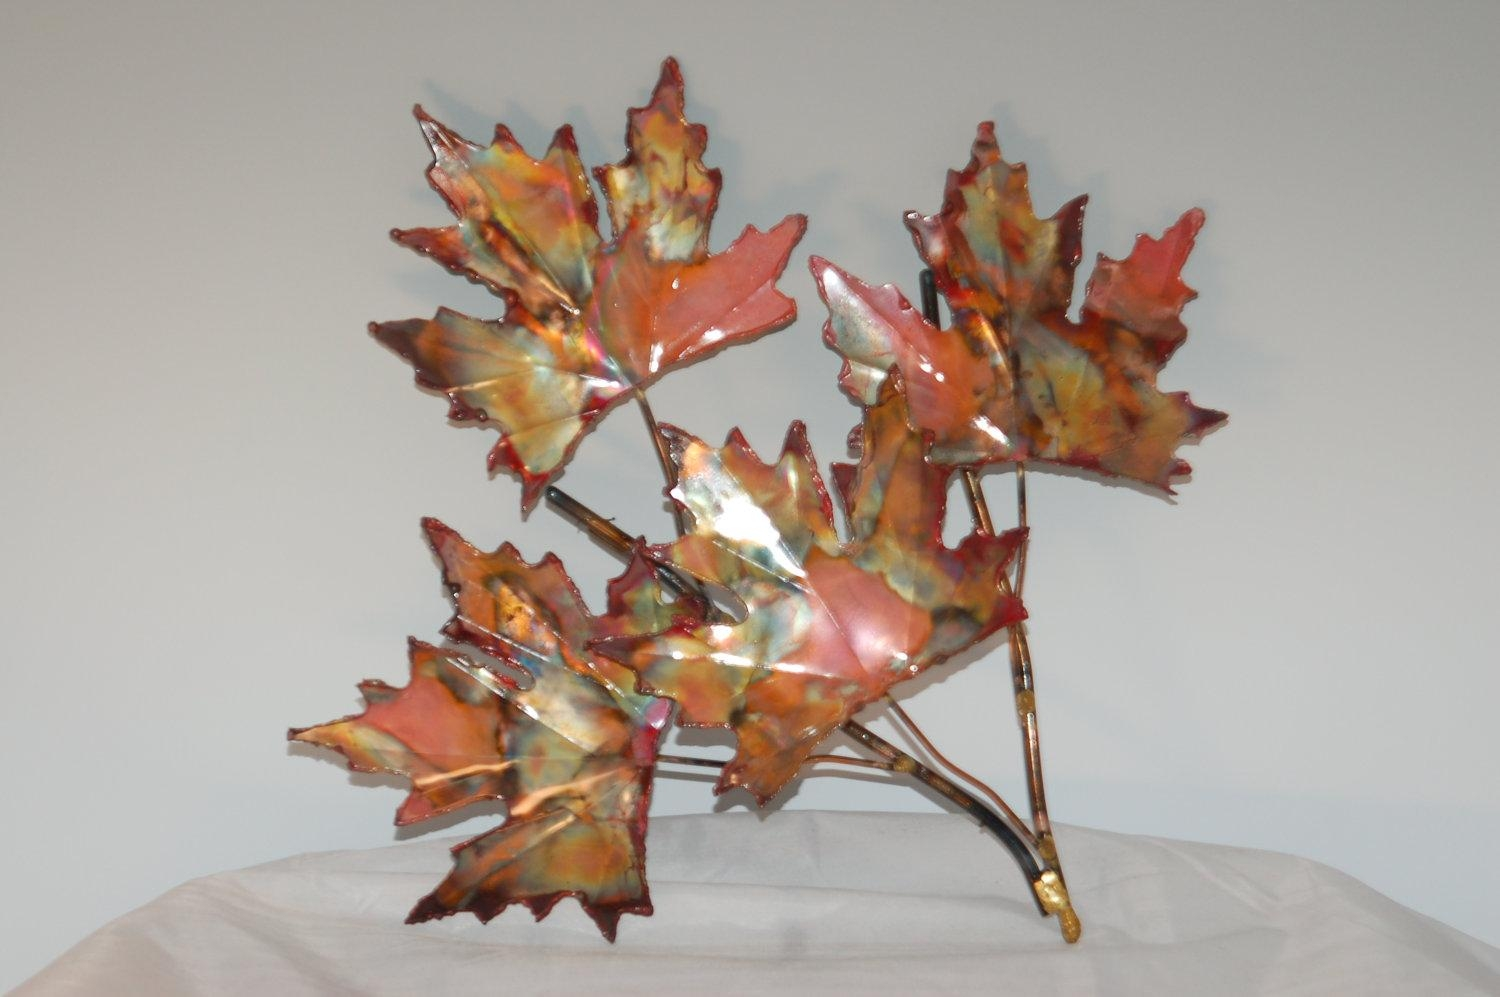 Copper Wall Art In Sculptures, Trees, Accents And Photo Paintings Throughout Copper Wall Art Home Decor (View 2 of 20)